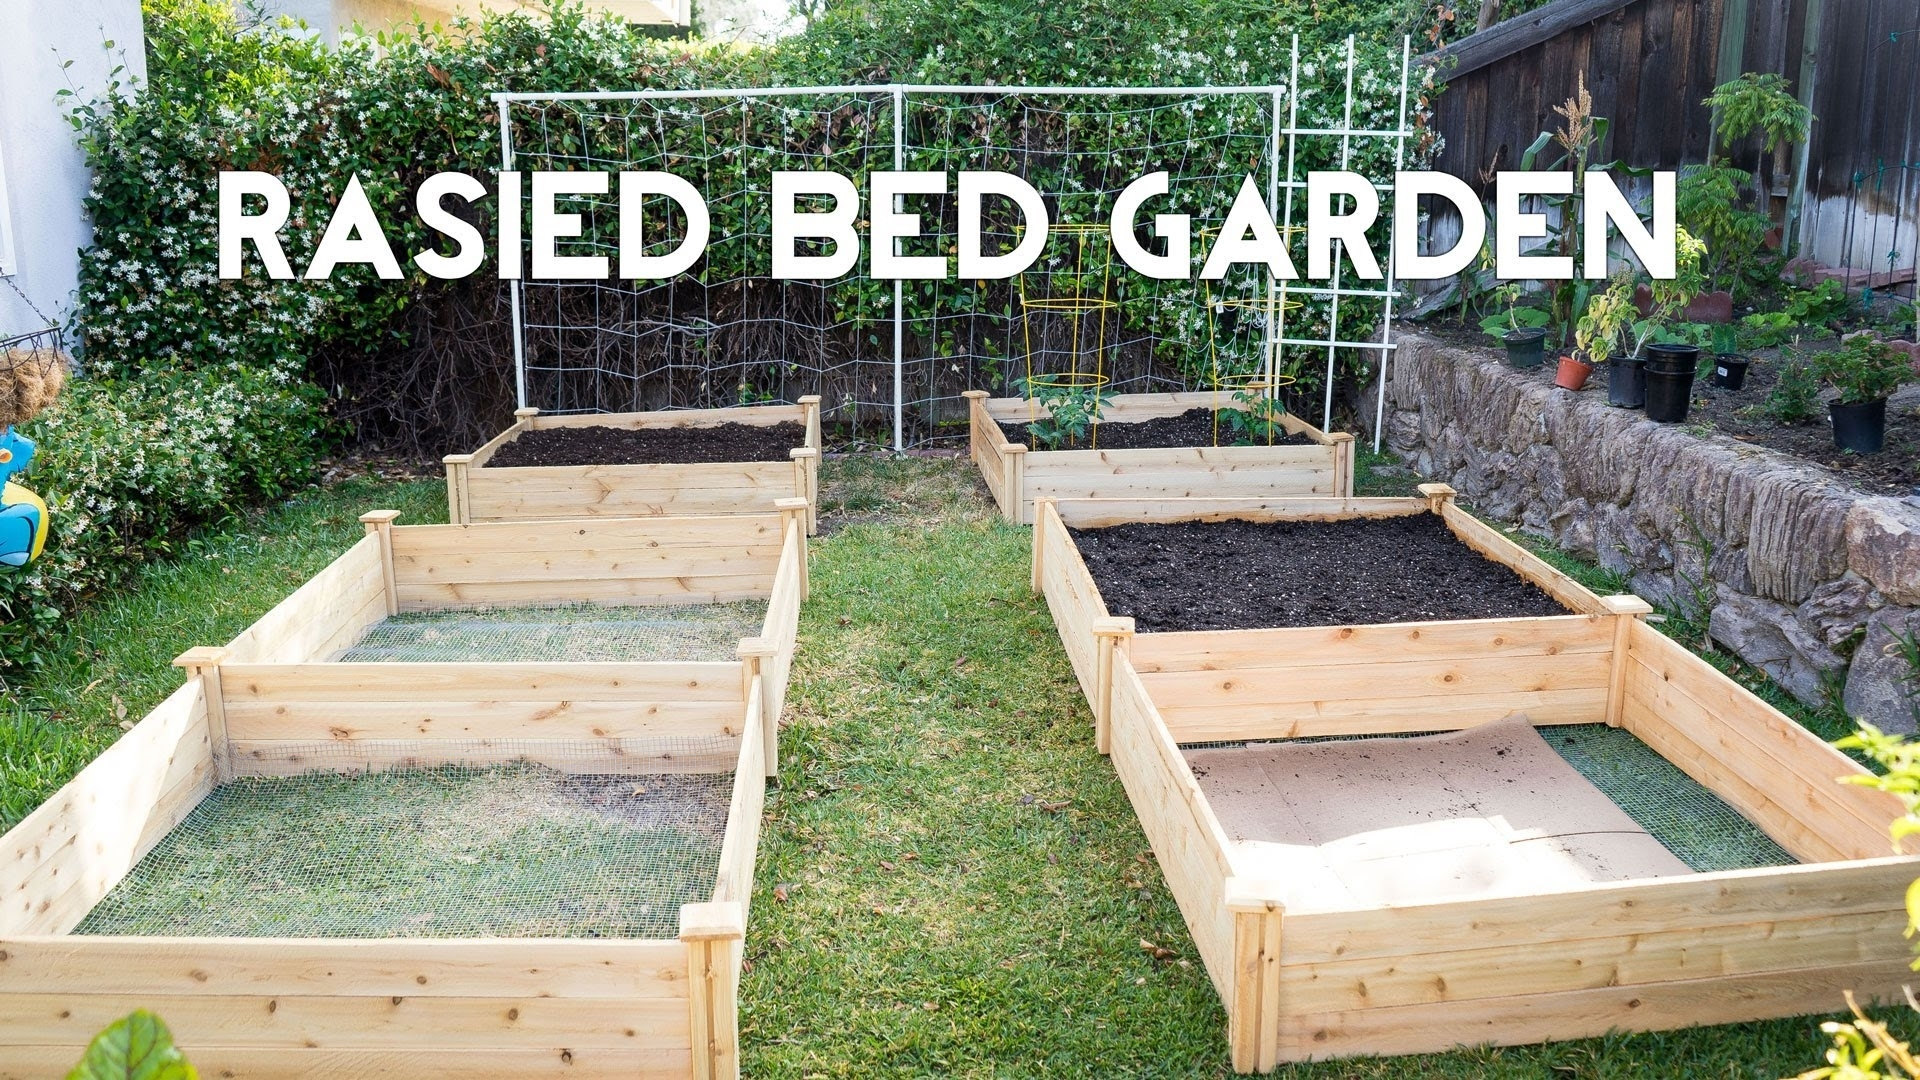 Raised Bed Gardening - How To Start A Garden With Raised Beds - Youtube with Backyard Garden Raised Beds